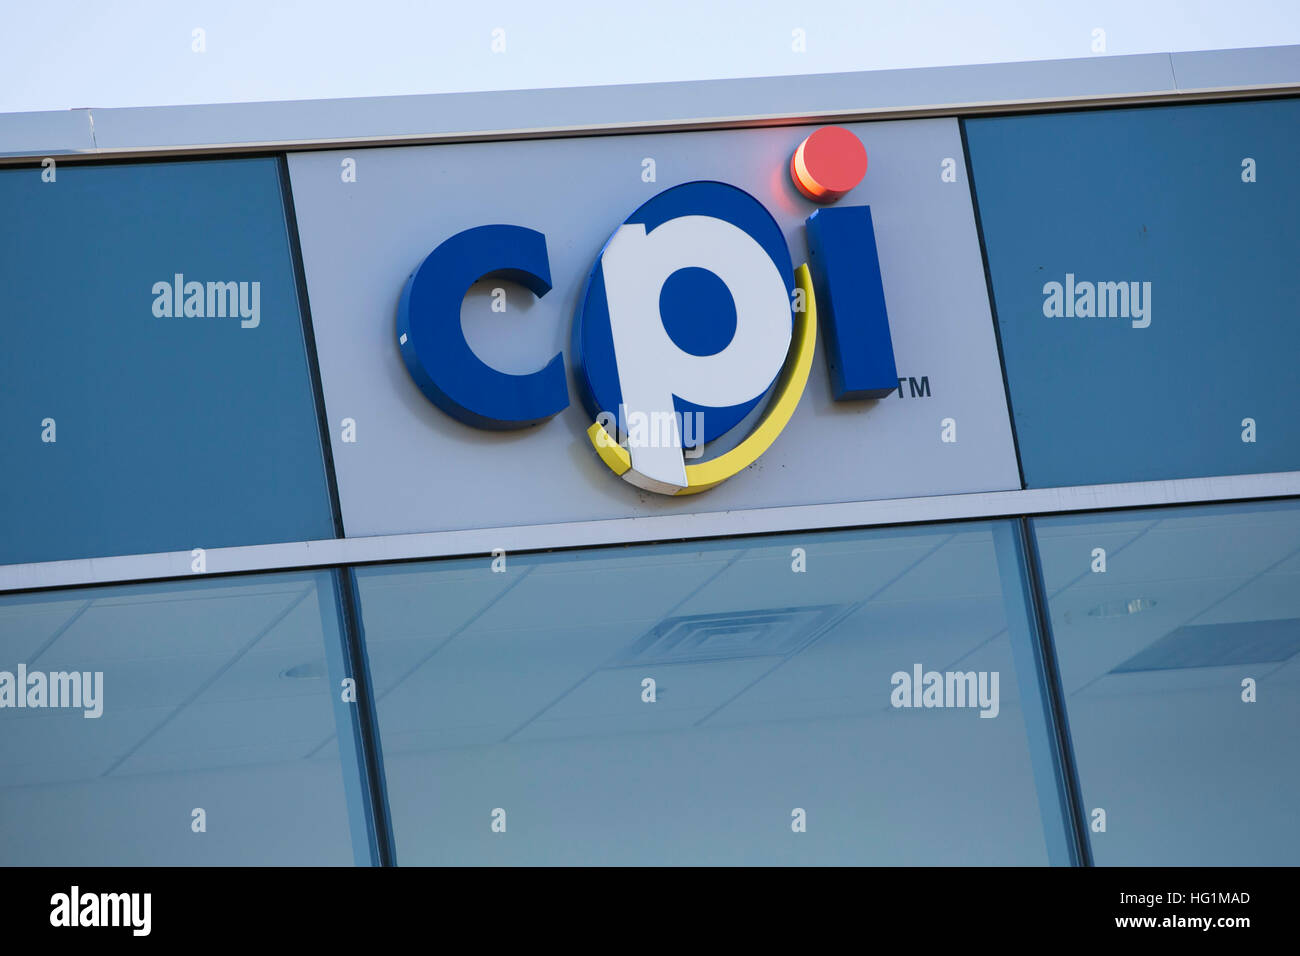 A logo sign outside of the headquarters of Crane Payment Innovations in Malvern, Pennsylvania on December 10, 2016. - Stock Image